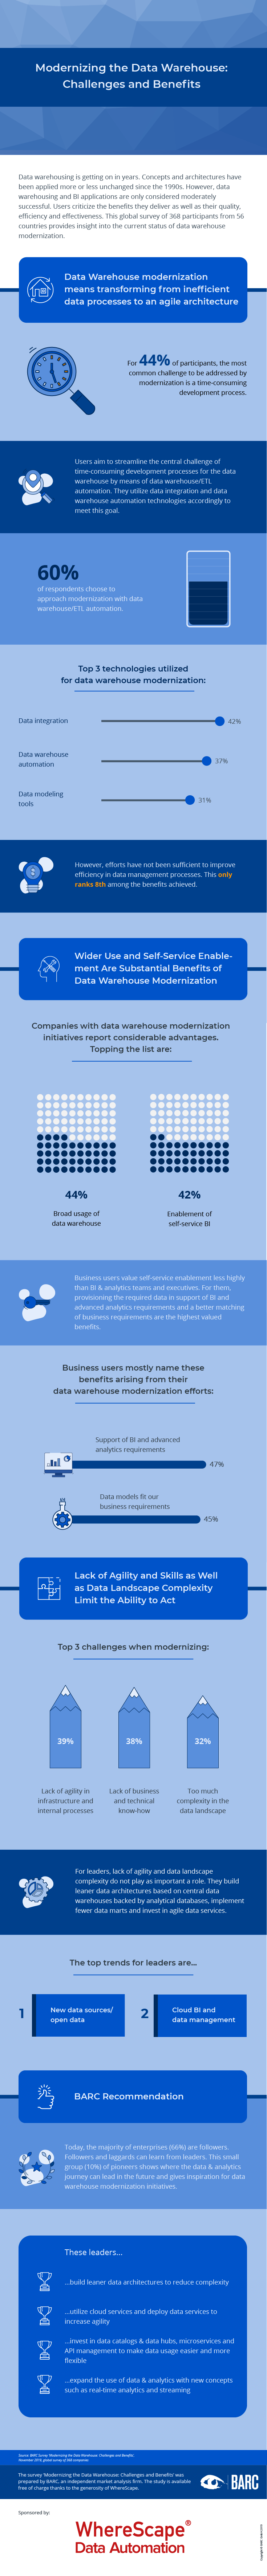 data warehouse modernization infographic